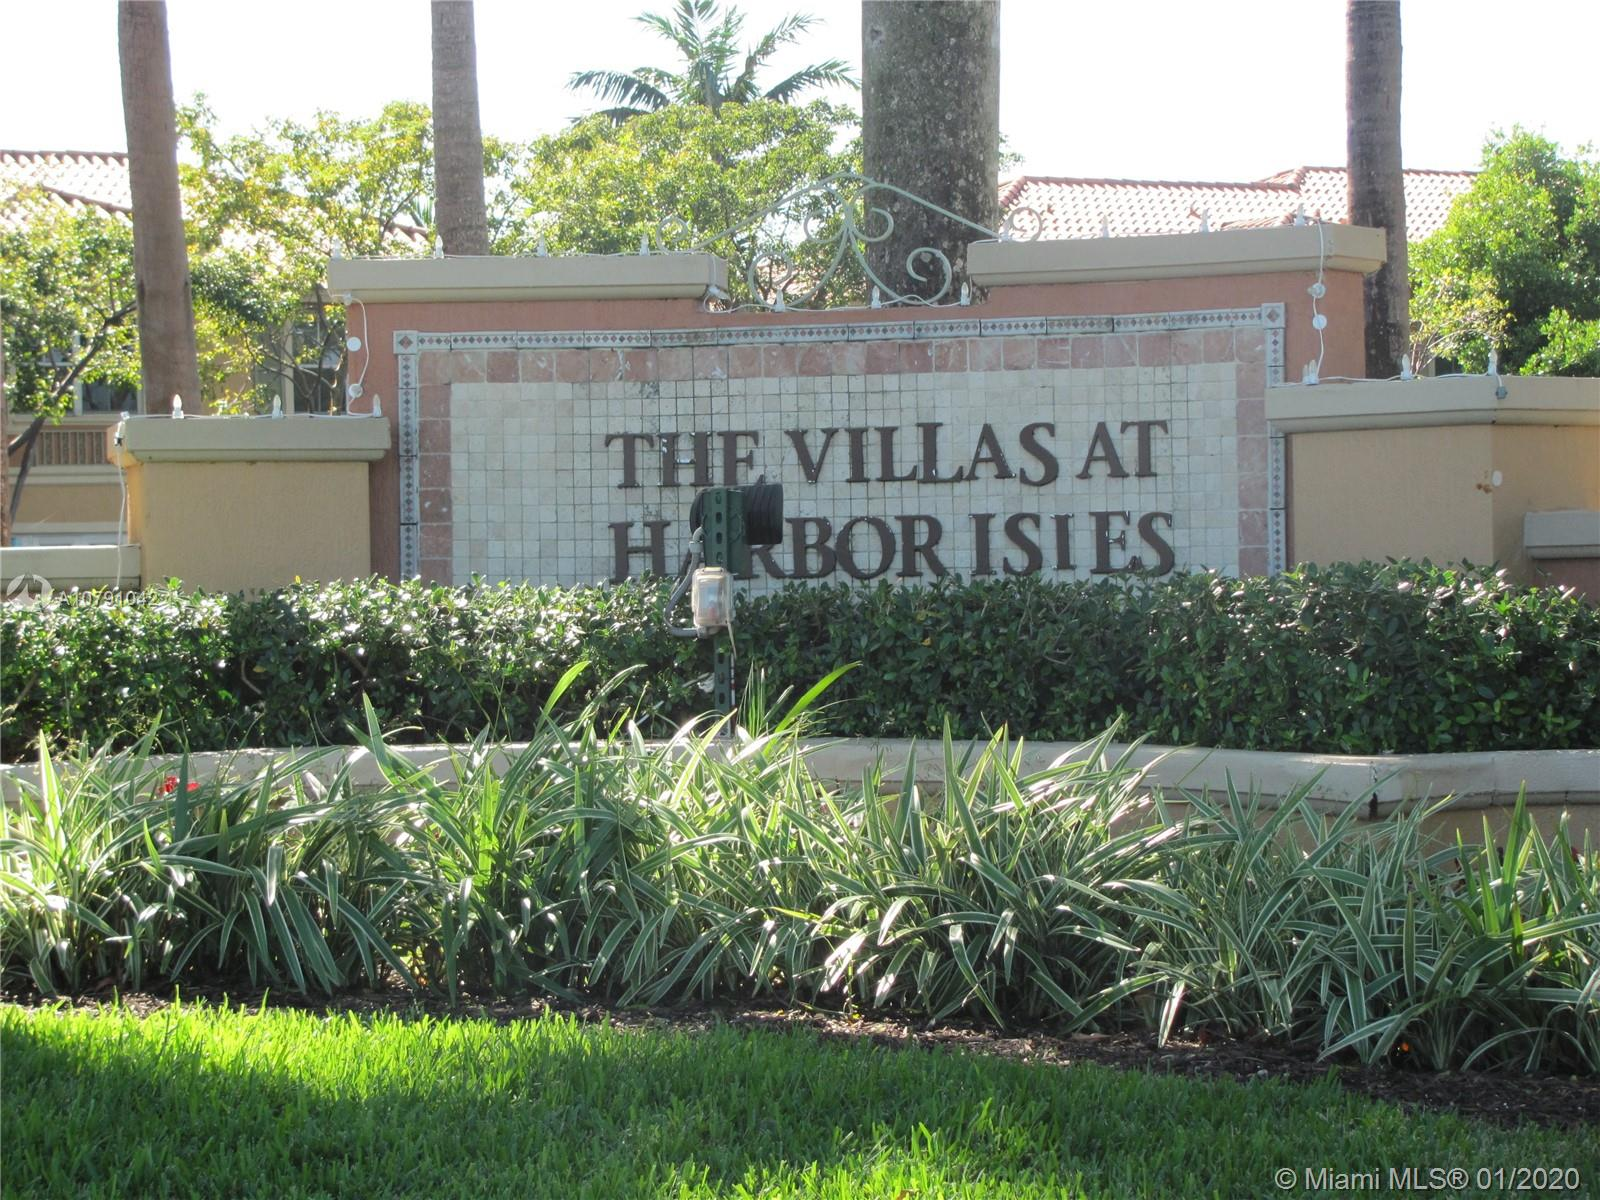 Beautifully kept 3 bedroom, 3 FULL bath townhome in the Villas at Harbor Isles.  Gorgeous lake view, electronic gated entrance.  Excellent location, a few minutes from beach, Tri-rail, I-95 and 595. Minutes to Fort Lauderdale or Miami. Features two child's playground areas, workout area, pool and sauna area, indoor dramatic ceiling heights, full-size washer and dryer, large walk-in closets, custom-crafted European style vanities. This is a must-see!